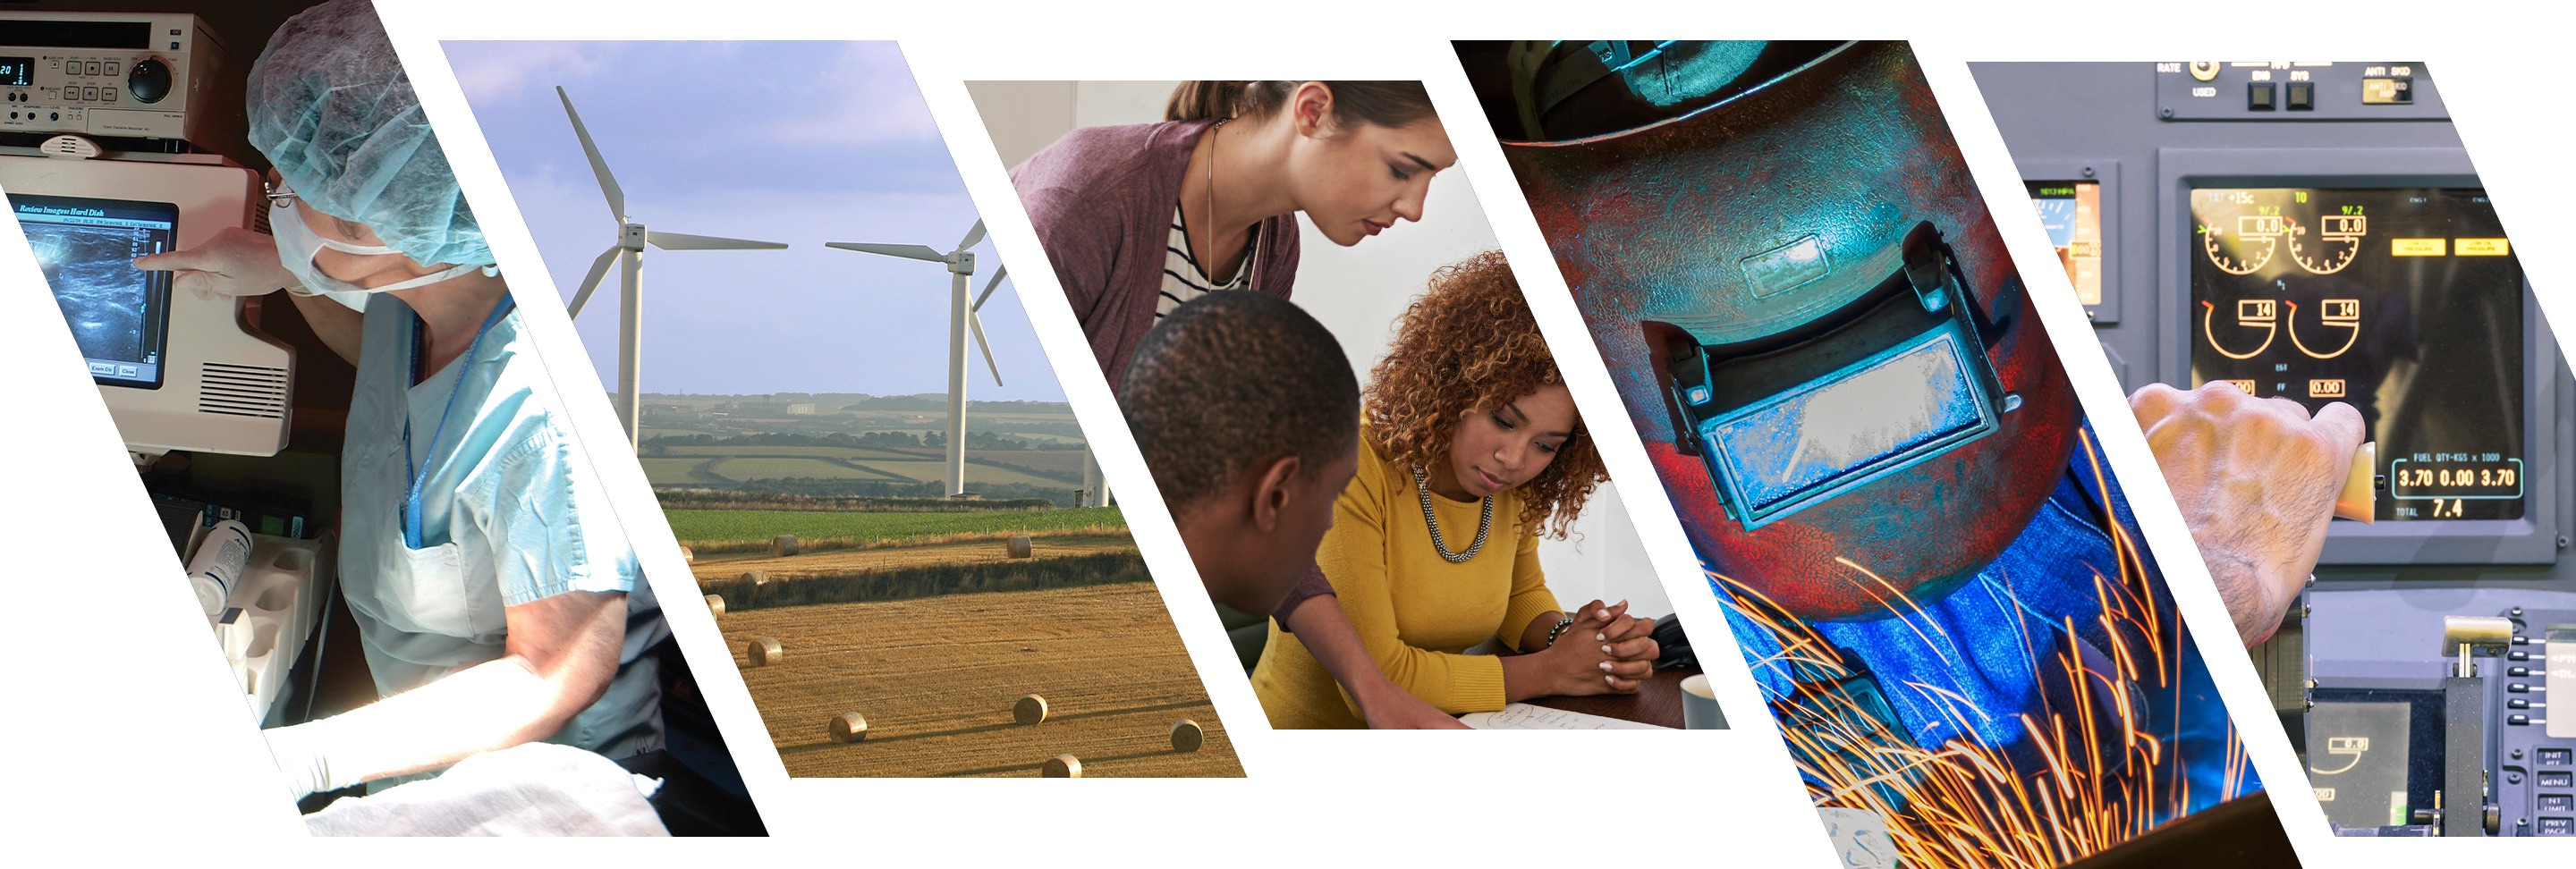 Collage image. From left to right: a jet engine, windmills, people at a desk, a welder, and a pilot.